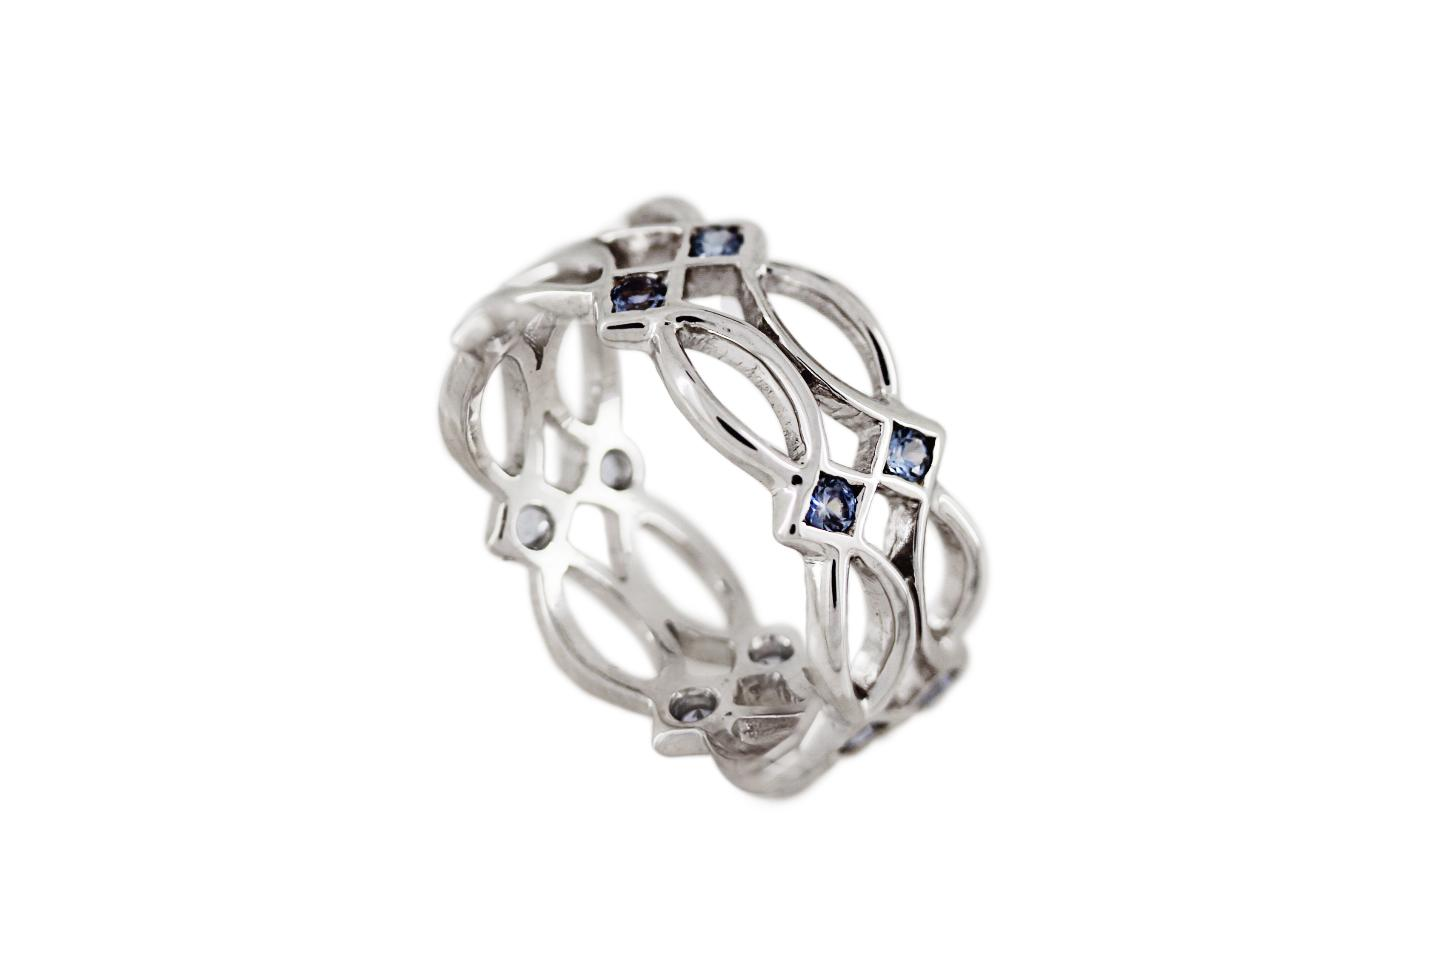 9ct White Gold Celtic Ring with Light Blue Sapphires